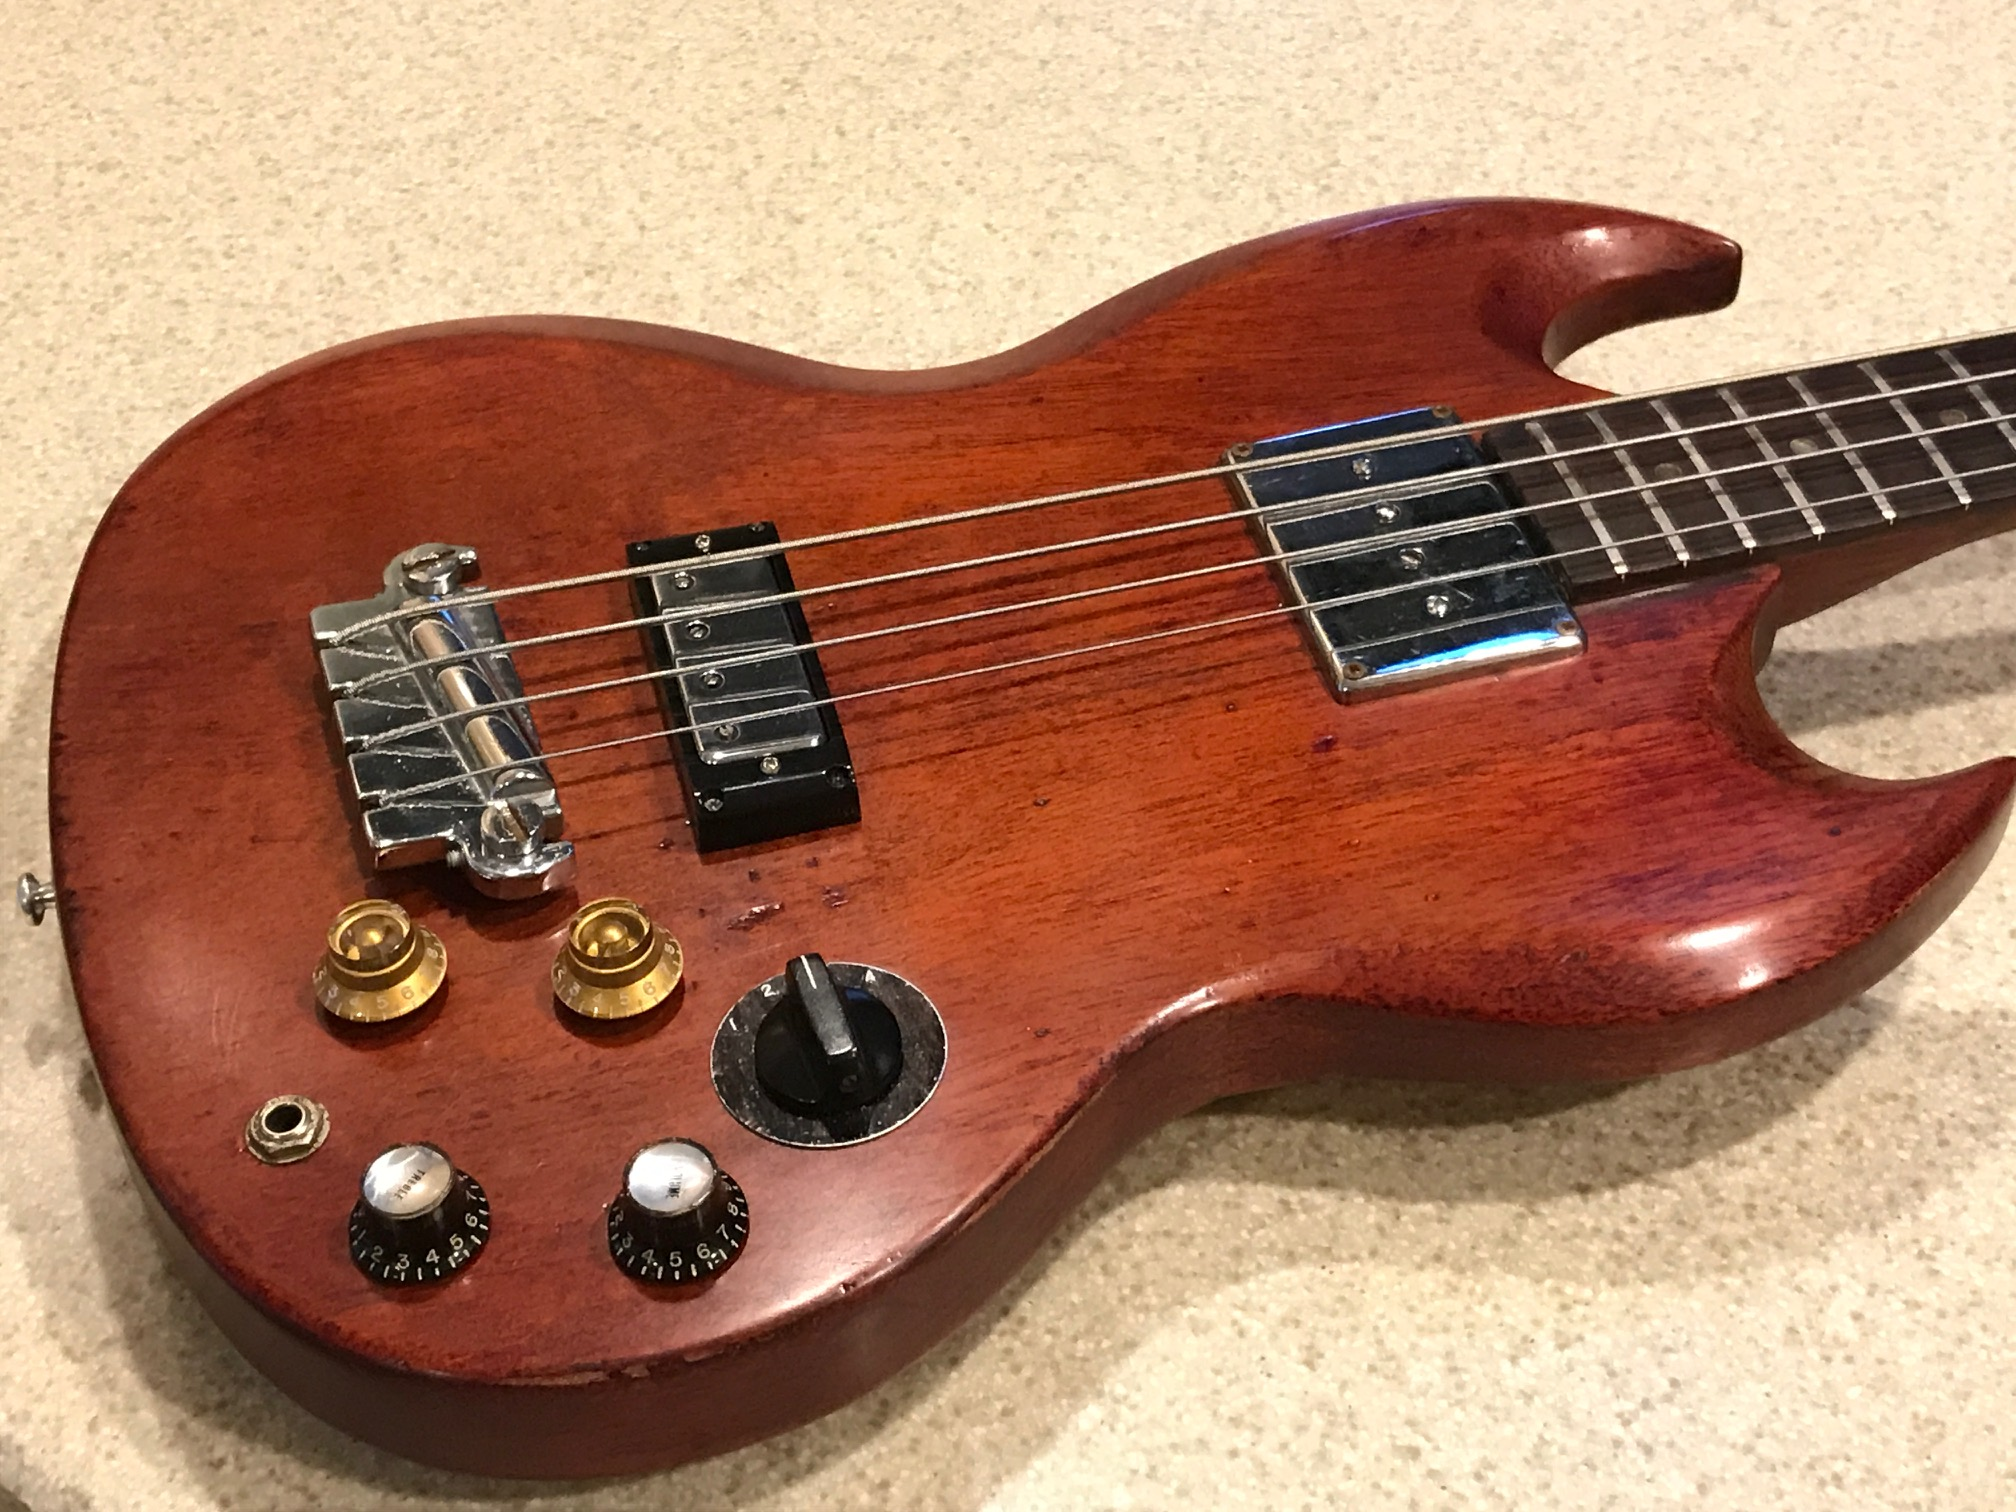 Show Your Modd 50s 60s 70s Guitars Basses And Amps Page 4 1981 Gibson Les Paul Wiring Harness So Its Somewhat Restored With A Refin Mishmosh Of Vintage Parts I Sourced From Ebay Reverb The Switch Choke Is Early